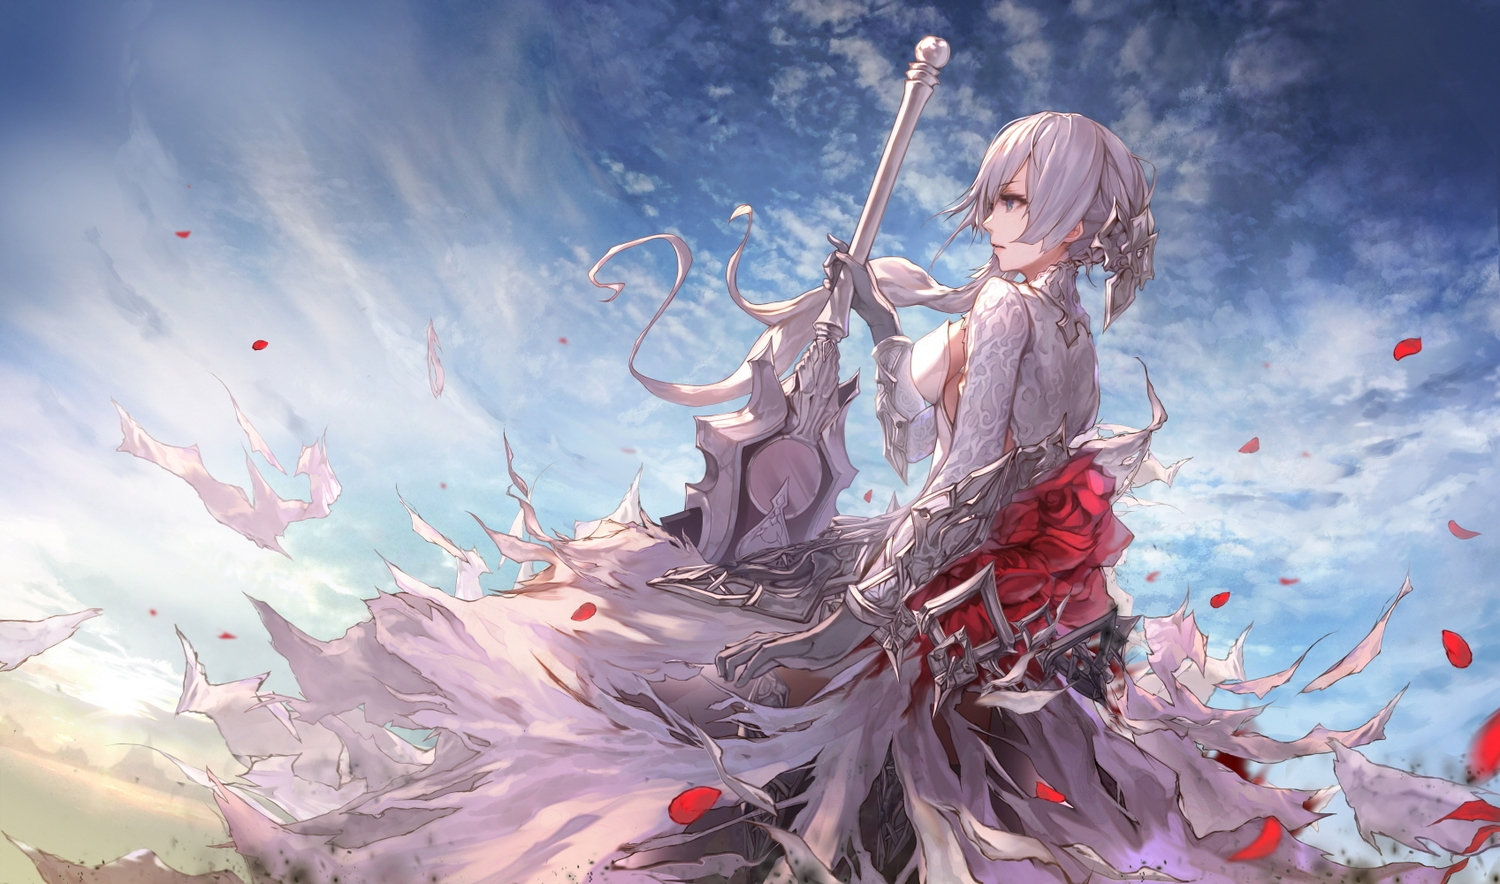 breasts clouds elbow_gloves gloves gray_hair green_eyes jname long_hair petals ponytail sideboob sinoalice sky snow_white_(sinoalice) sword torn_clothes weapon